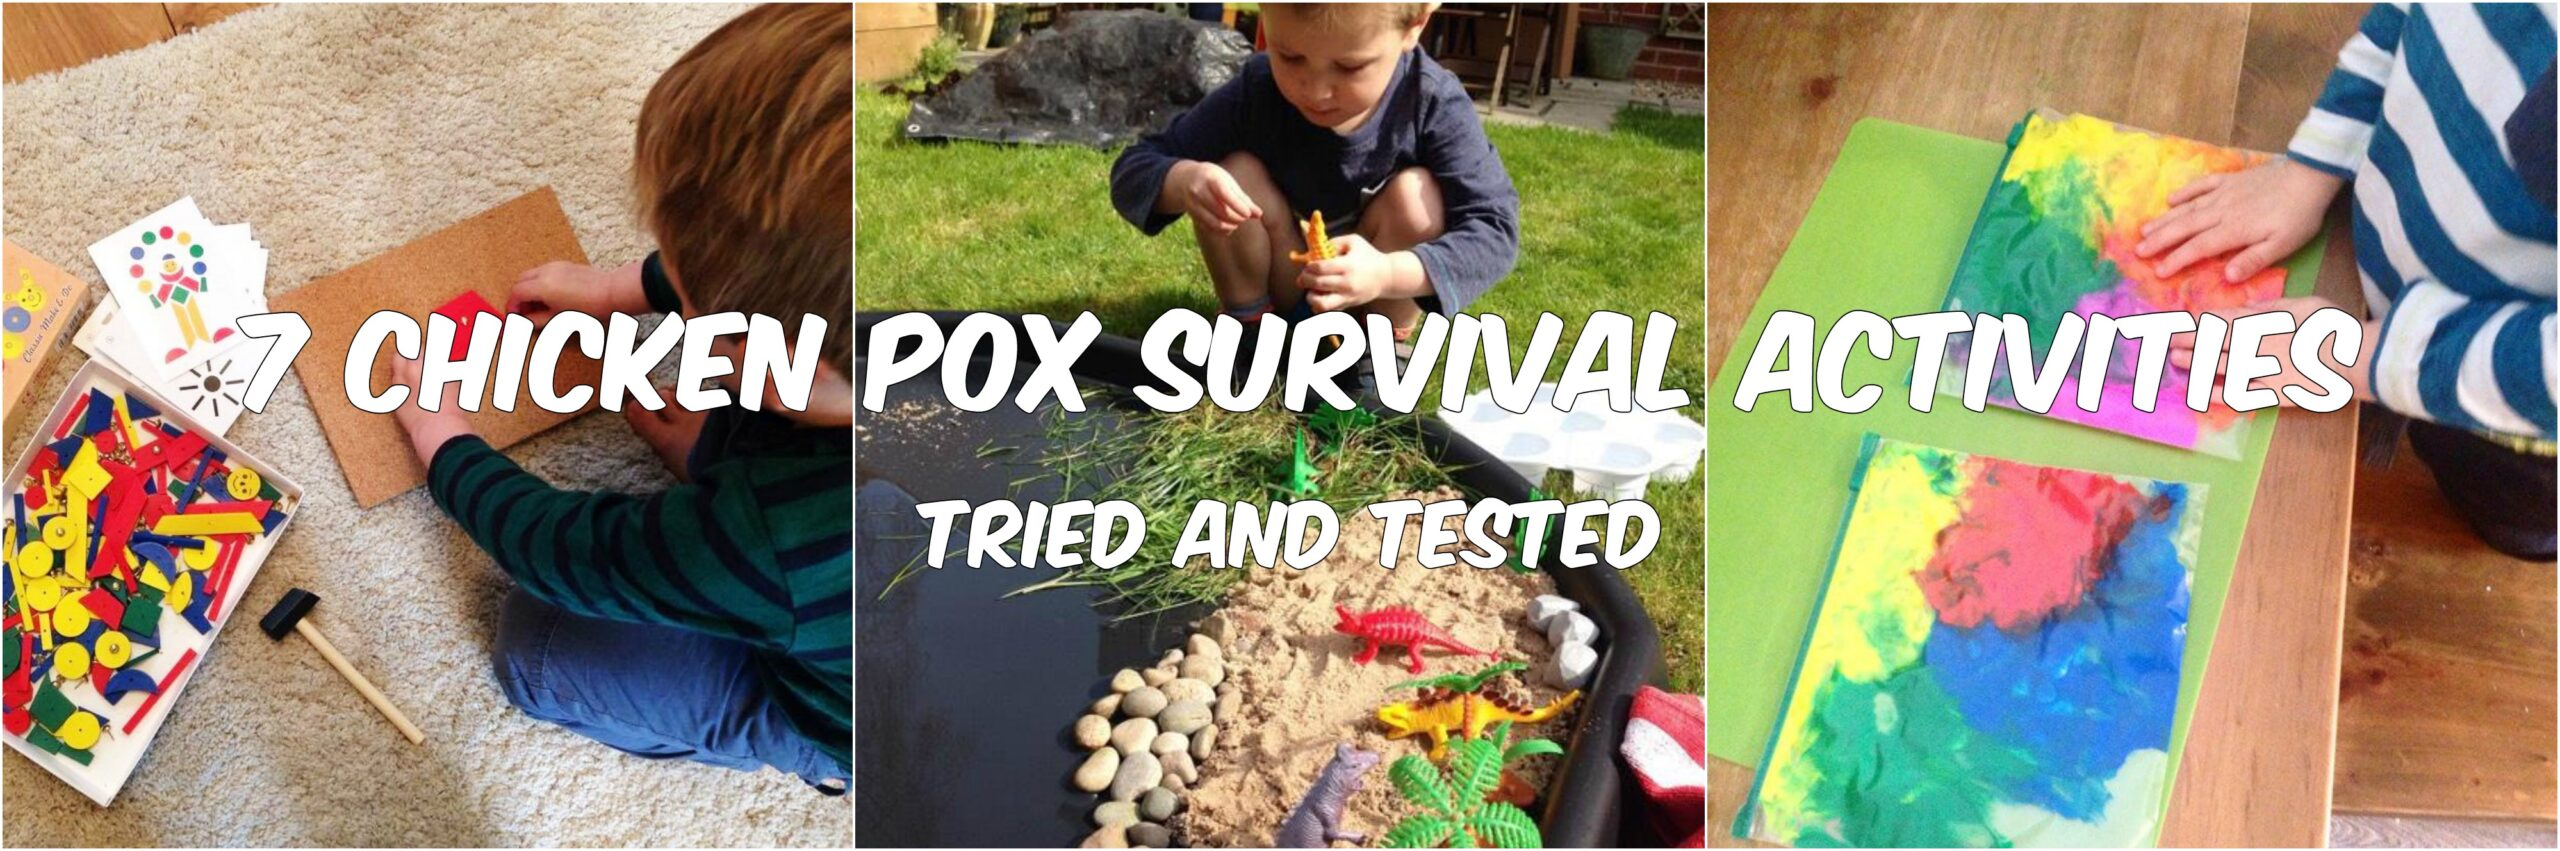 chicken pox survival collage